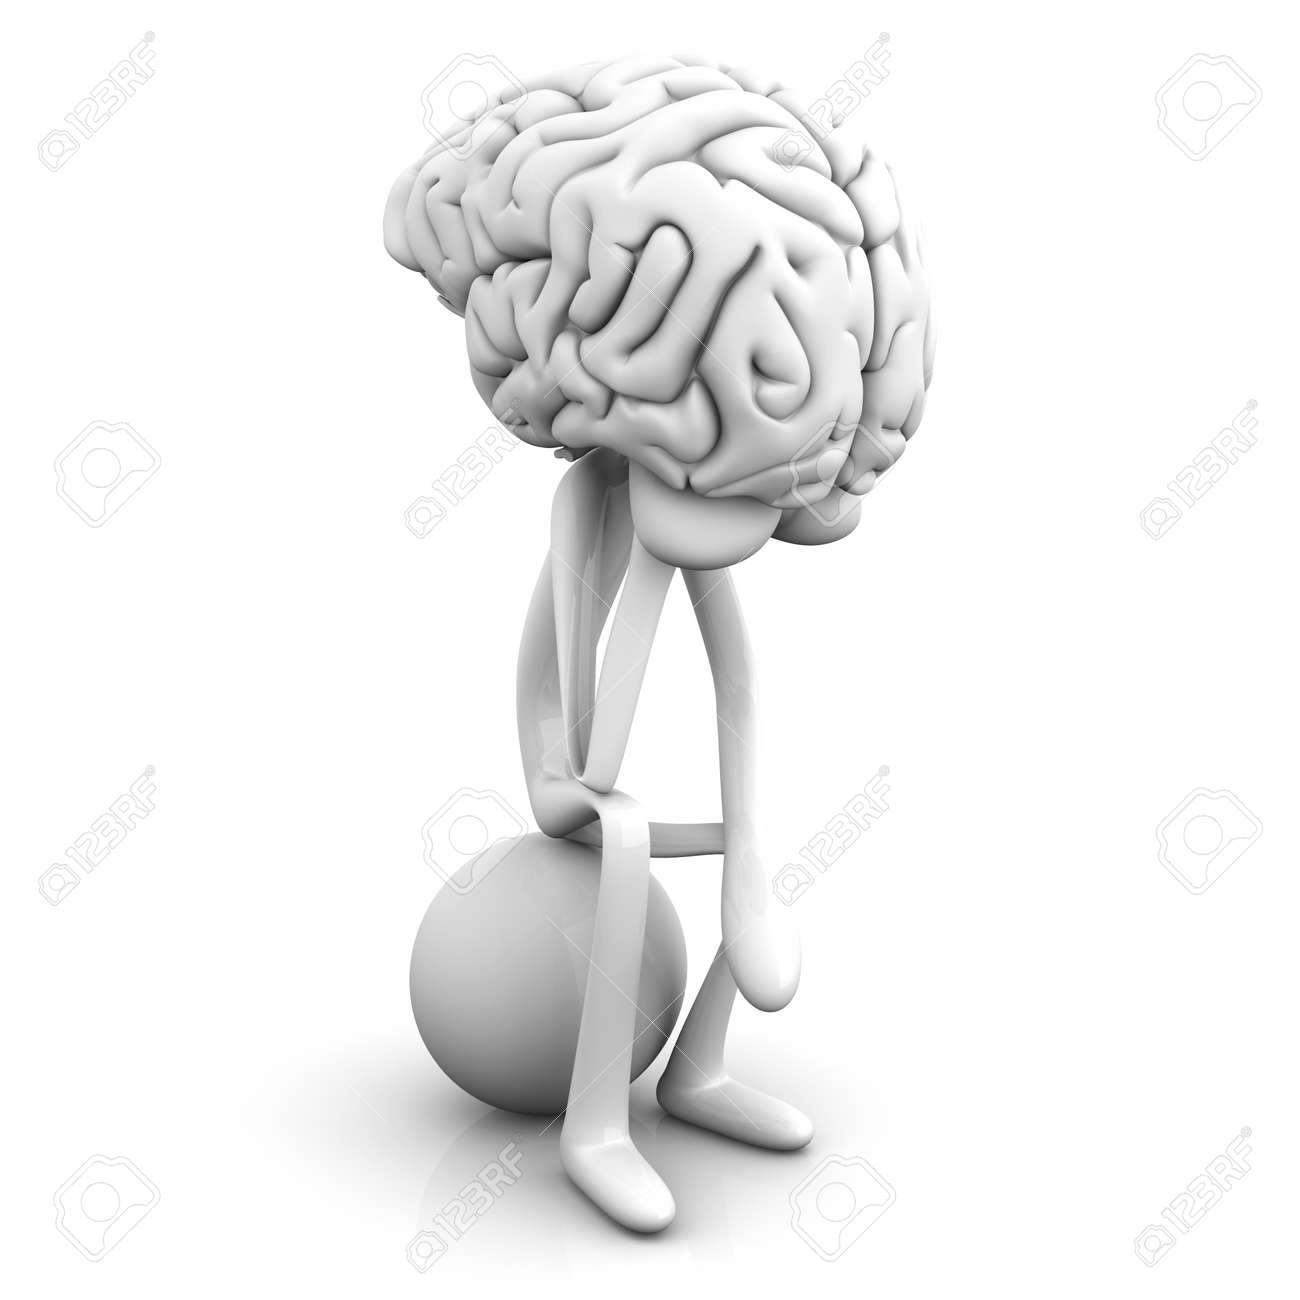 A cartoon figure con a huge brain. 3D rendered illustration. Isolated on white. Stock Photo - 11927478